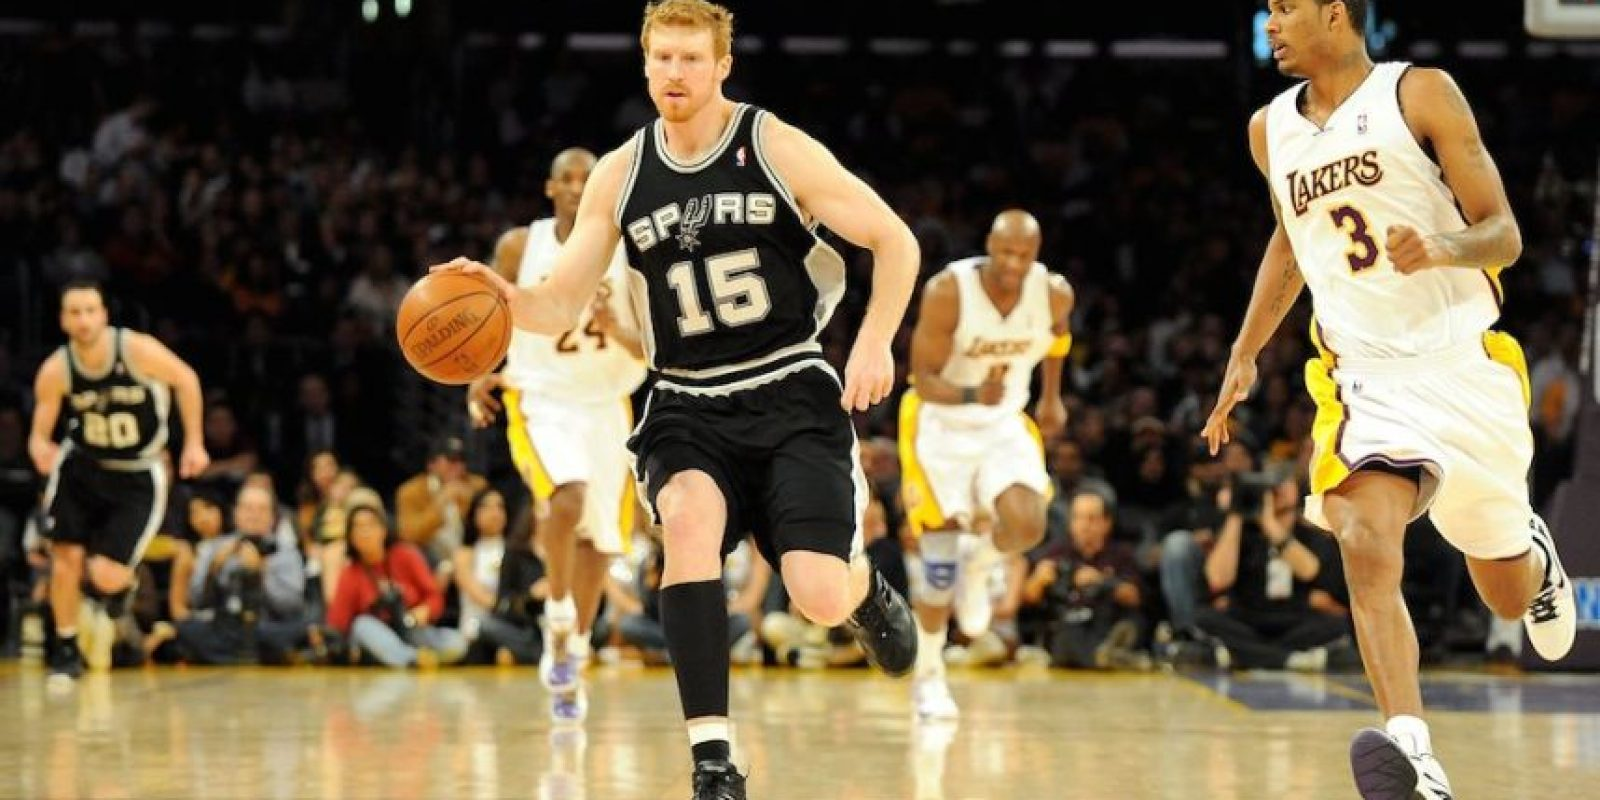 Bonner forma parte de los Spurs de San Antonio de la NBA. Foto: Getty Images